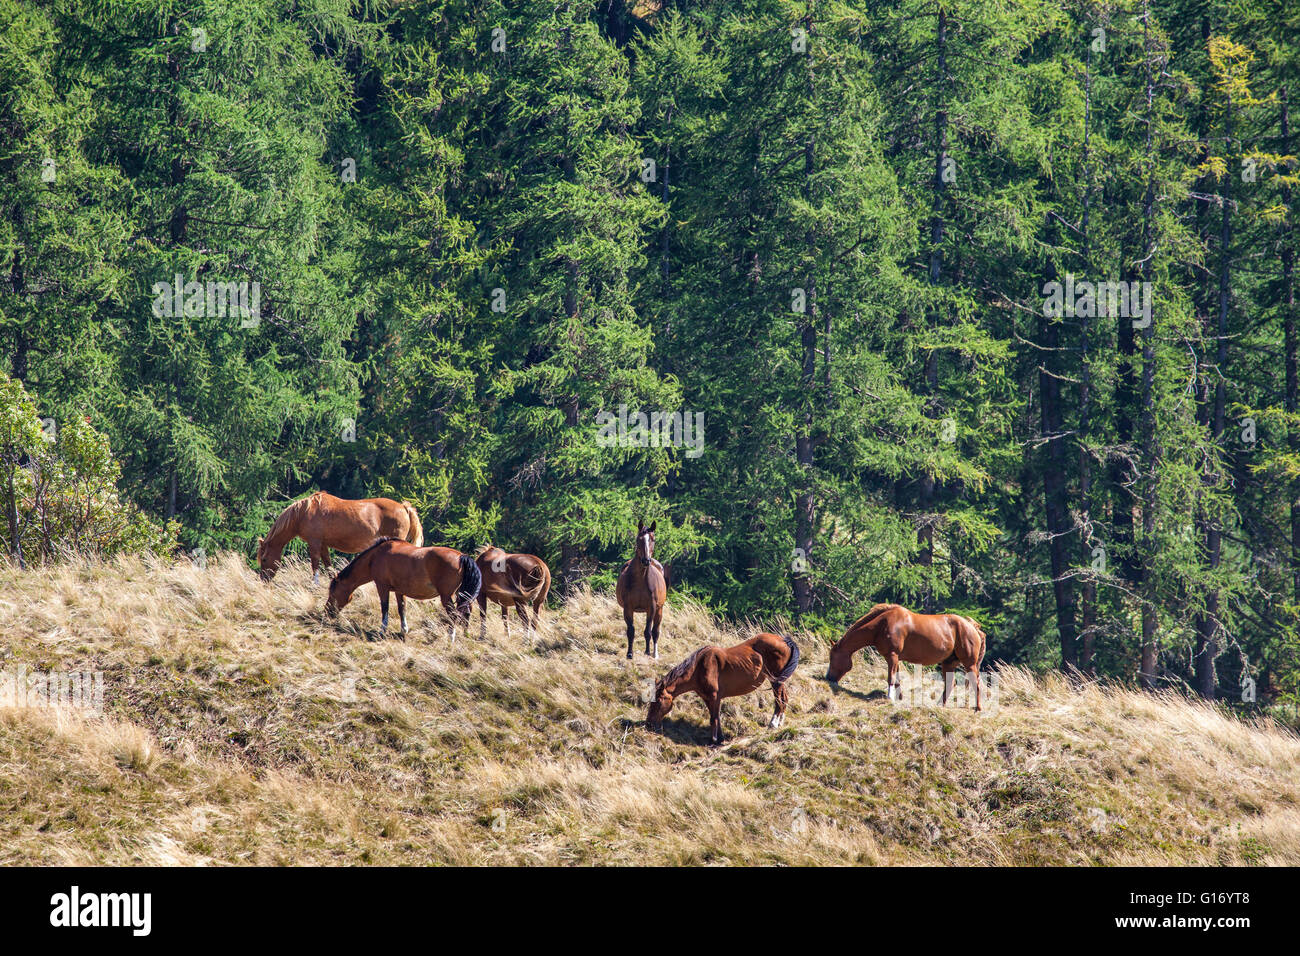 Several free brown horses grazing on a high mountain pasture. Stock Photo